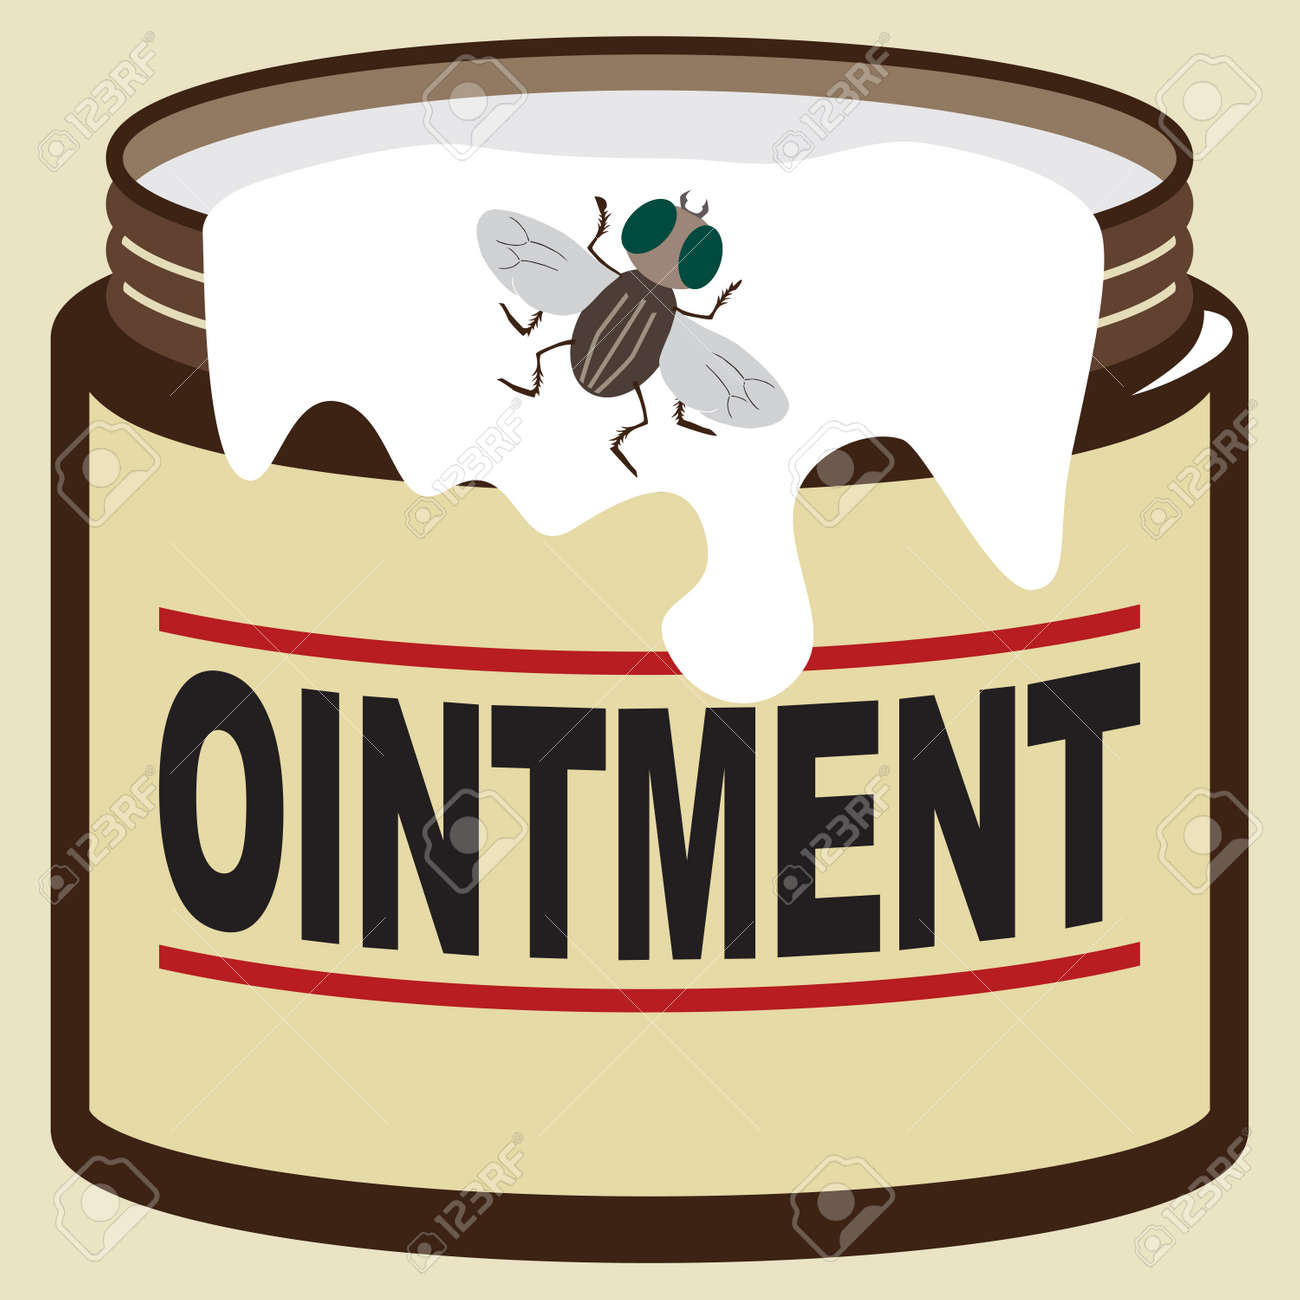 A fly is checking out some ointment that is running down the side of the jar - 167484627